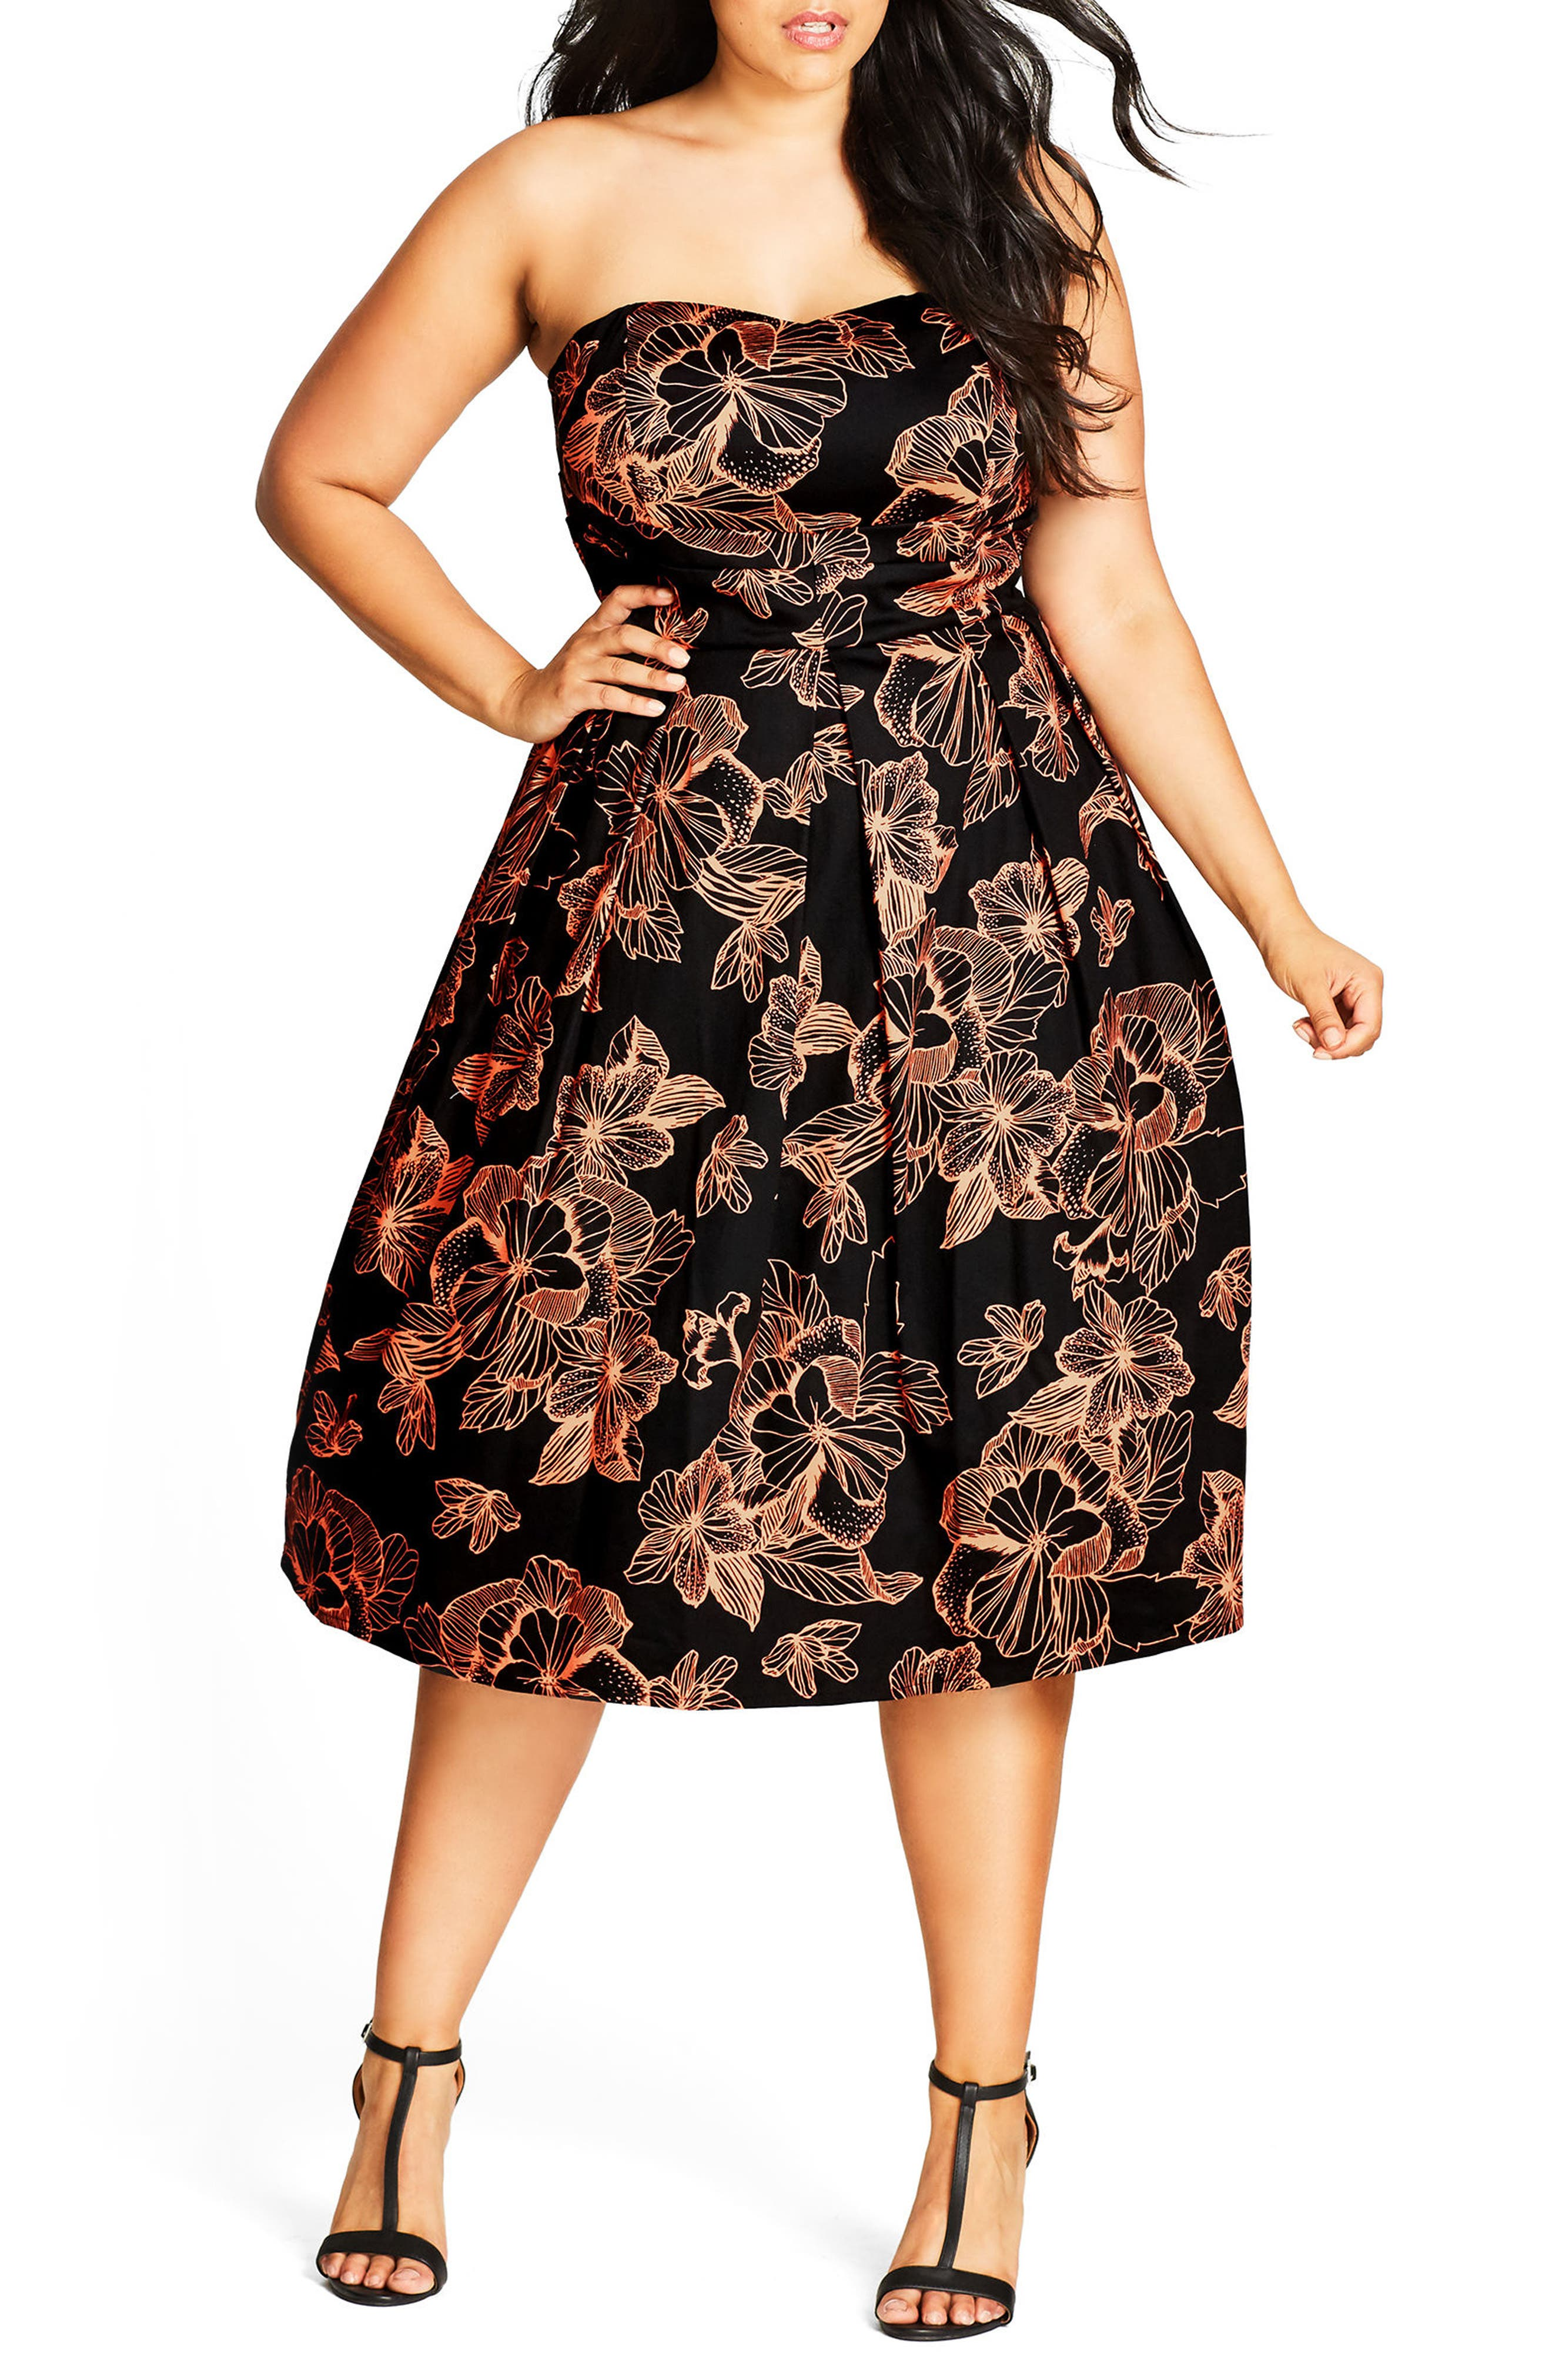 Alternate Image 1 Selected - City Chic Floral Outline Fit & Flare Dress (Plus Size)